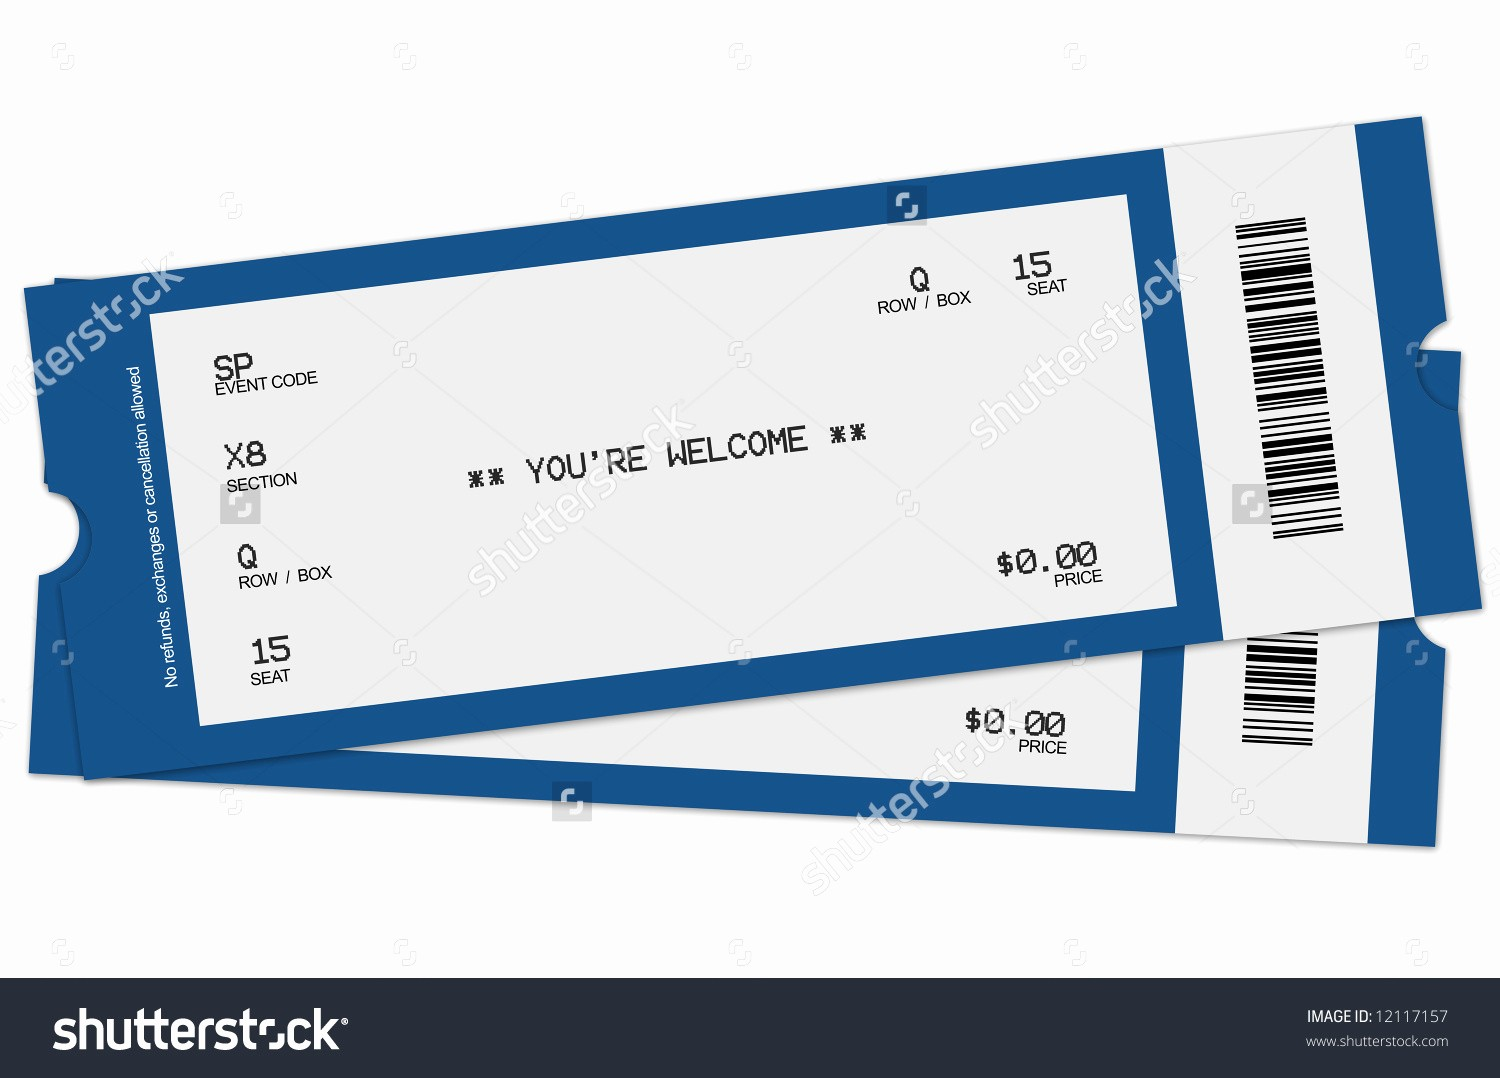 Free Printable Concert Ticket Template Beautiful Free Concert Ticket Template Business Proposal Cover